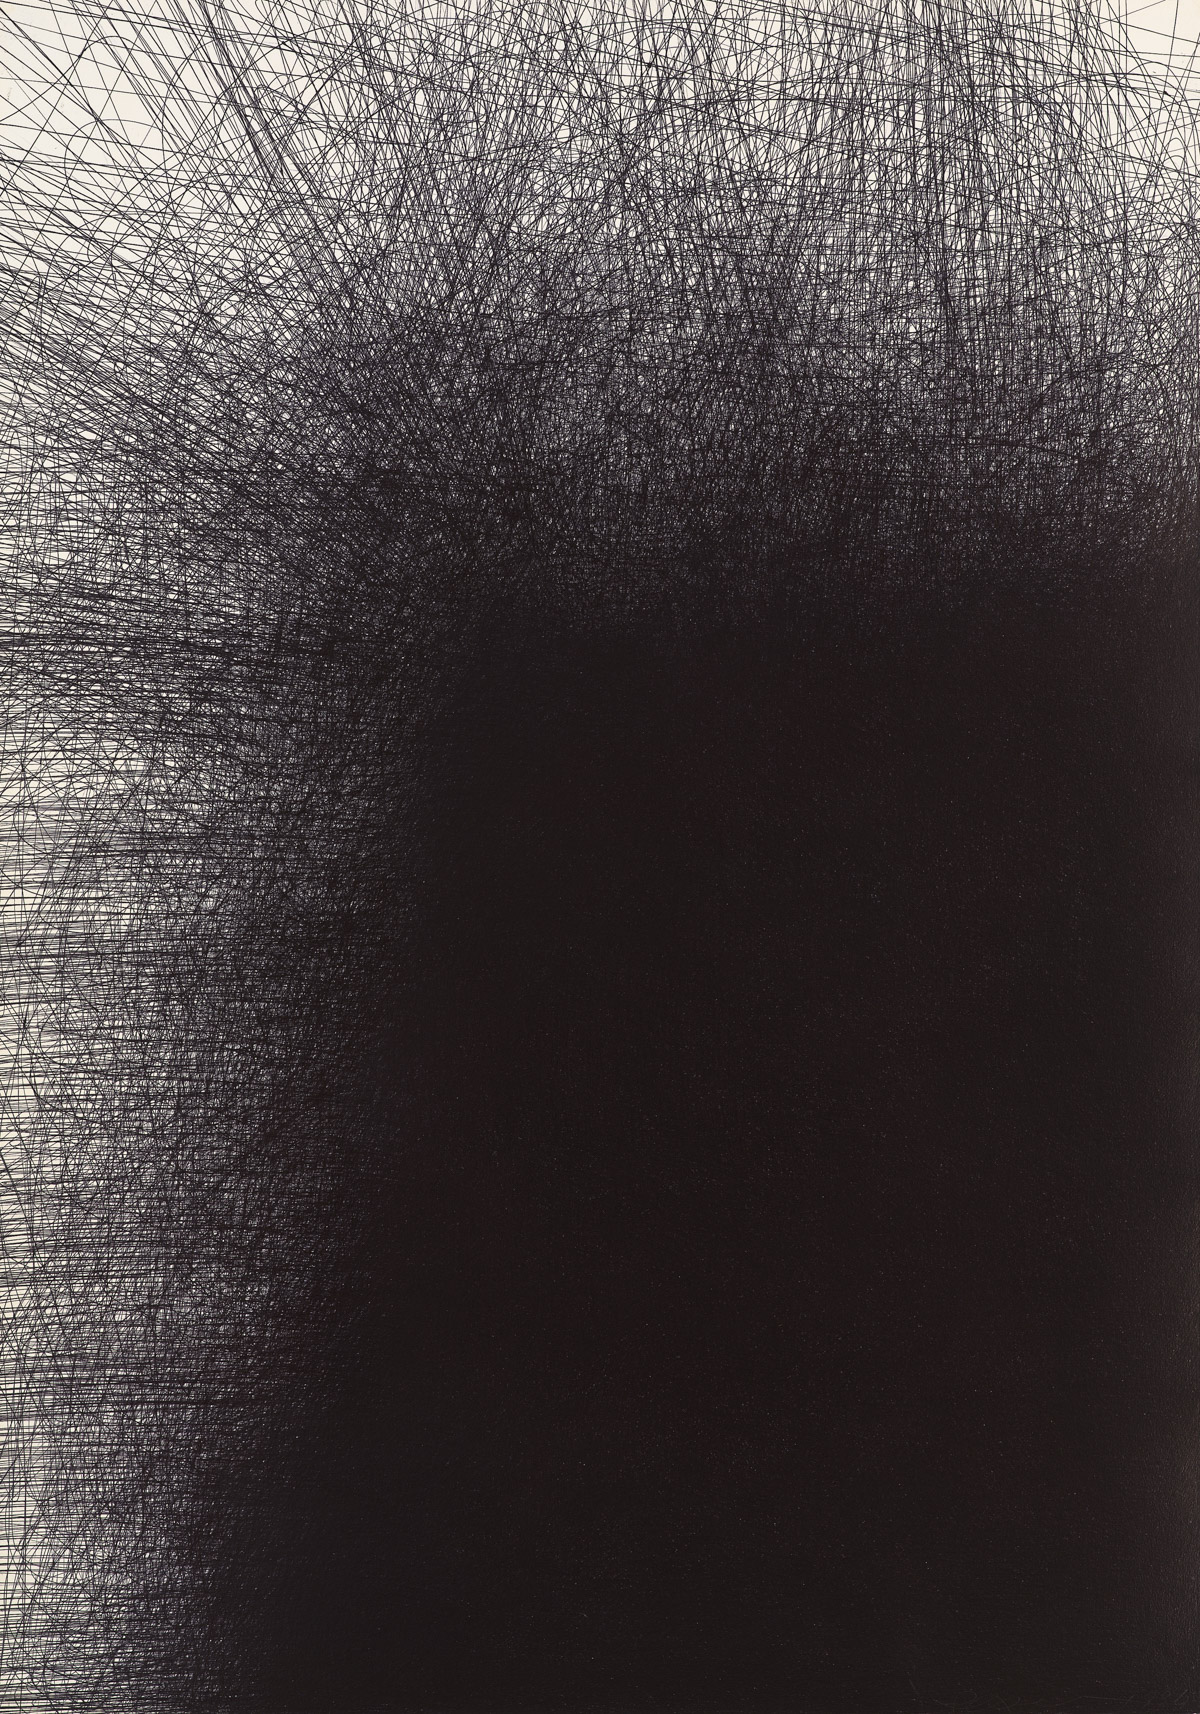 IL LEE, Untitled 9627, 1996, ballpoint ink on paper,42 x 29 3/4 inches (106.7 x 75.6 cm)